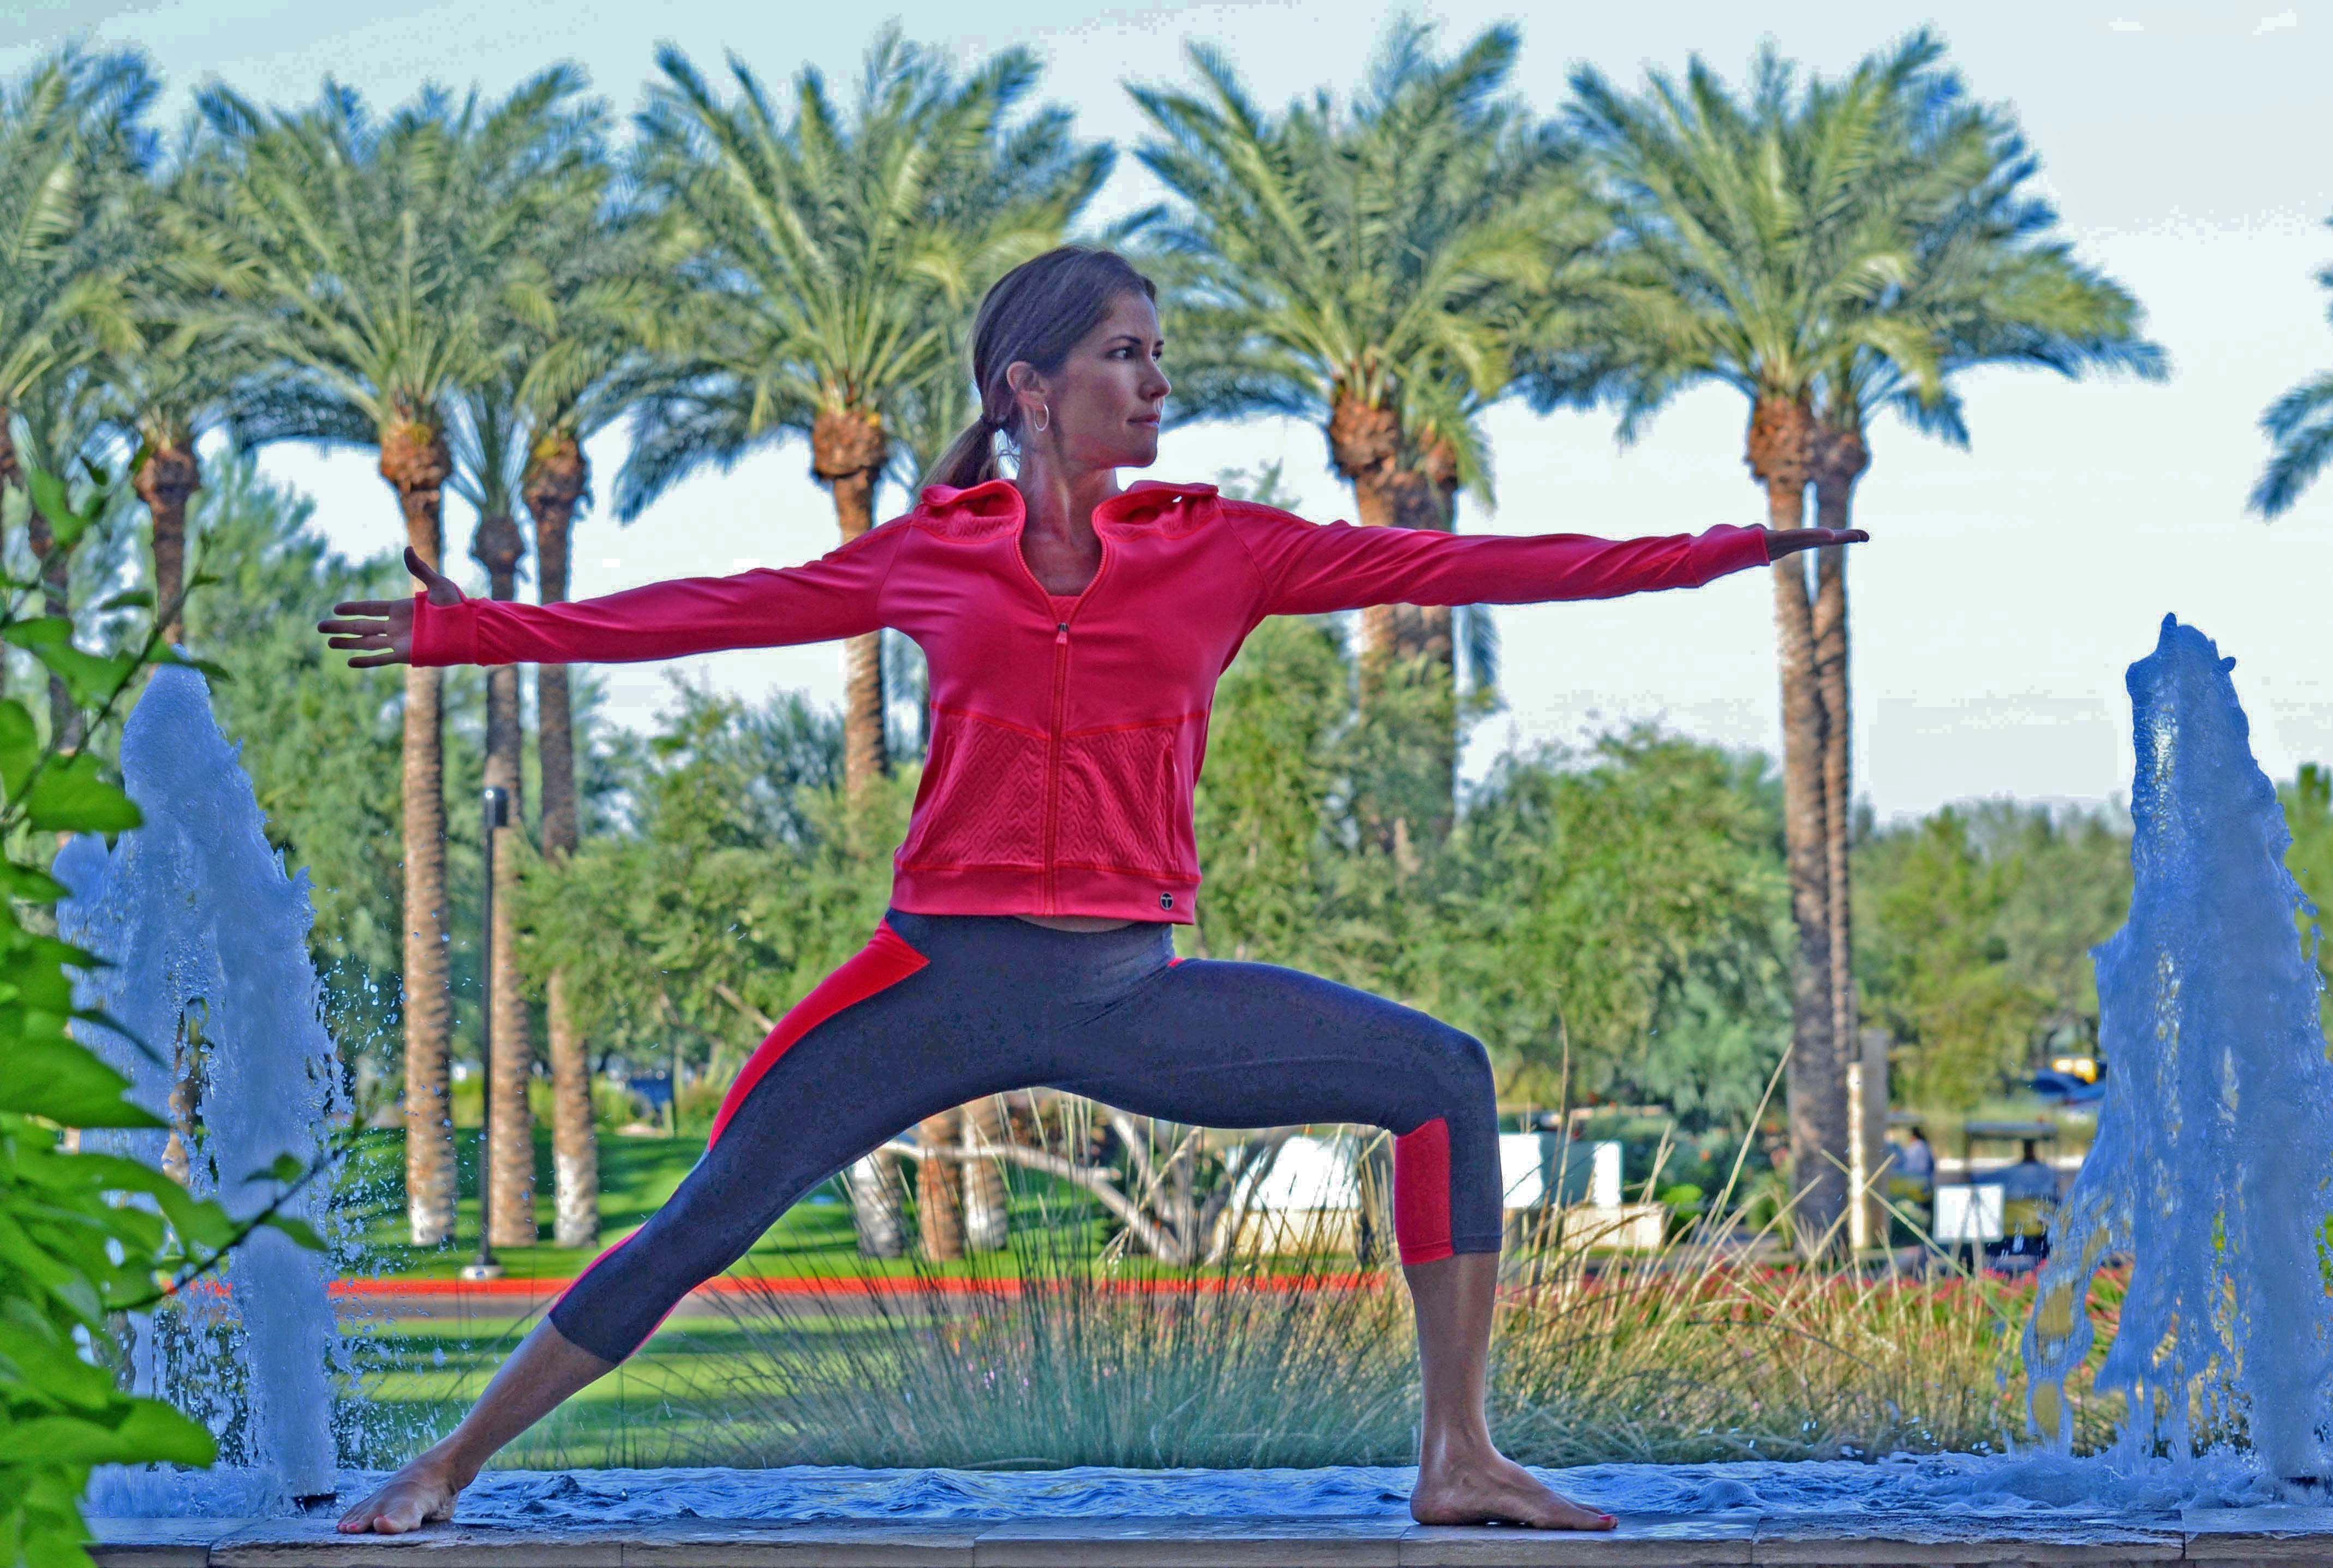 Great into your warrior pose with the beautiful palm tree backdrop at our front circle drive. Outfit can be purchased at Revive Spa Boutique.